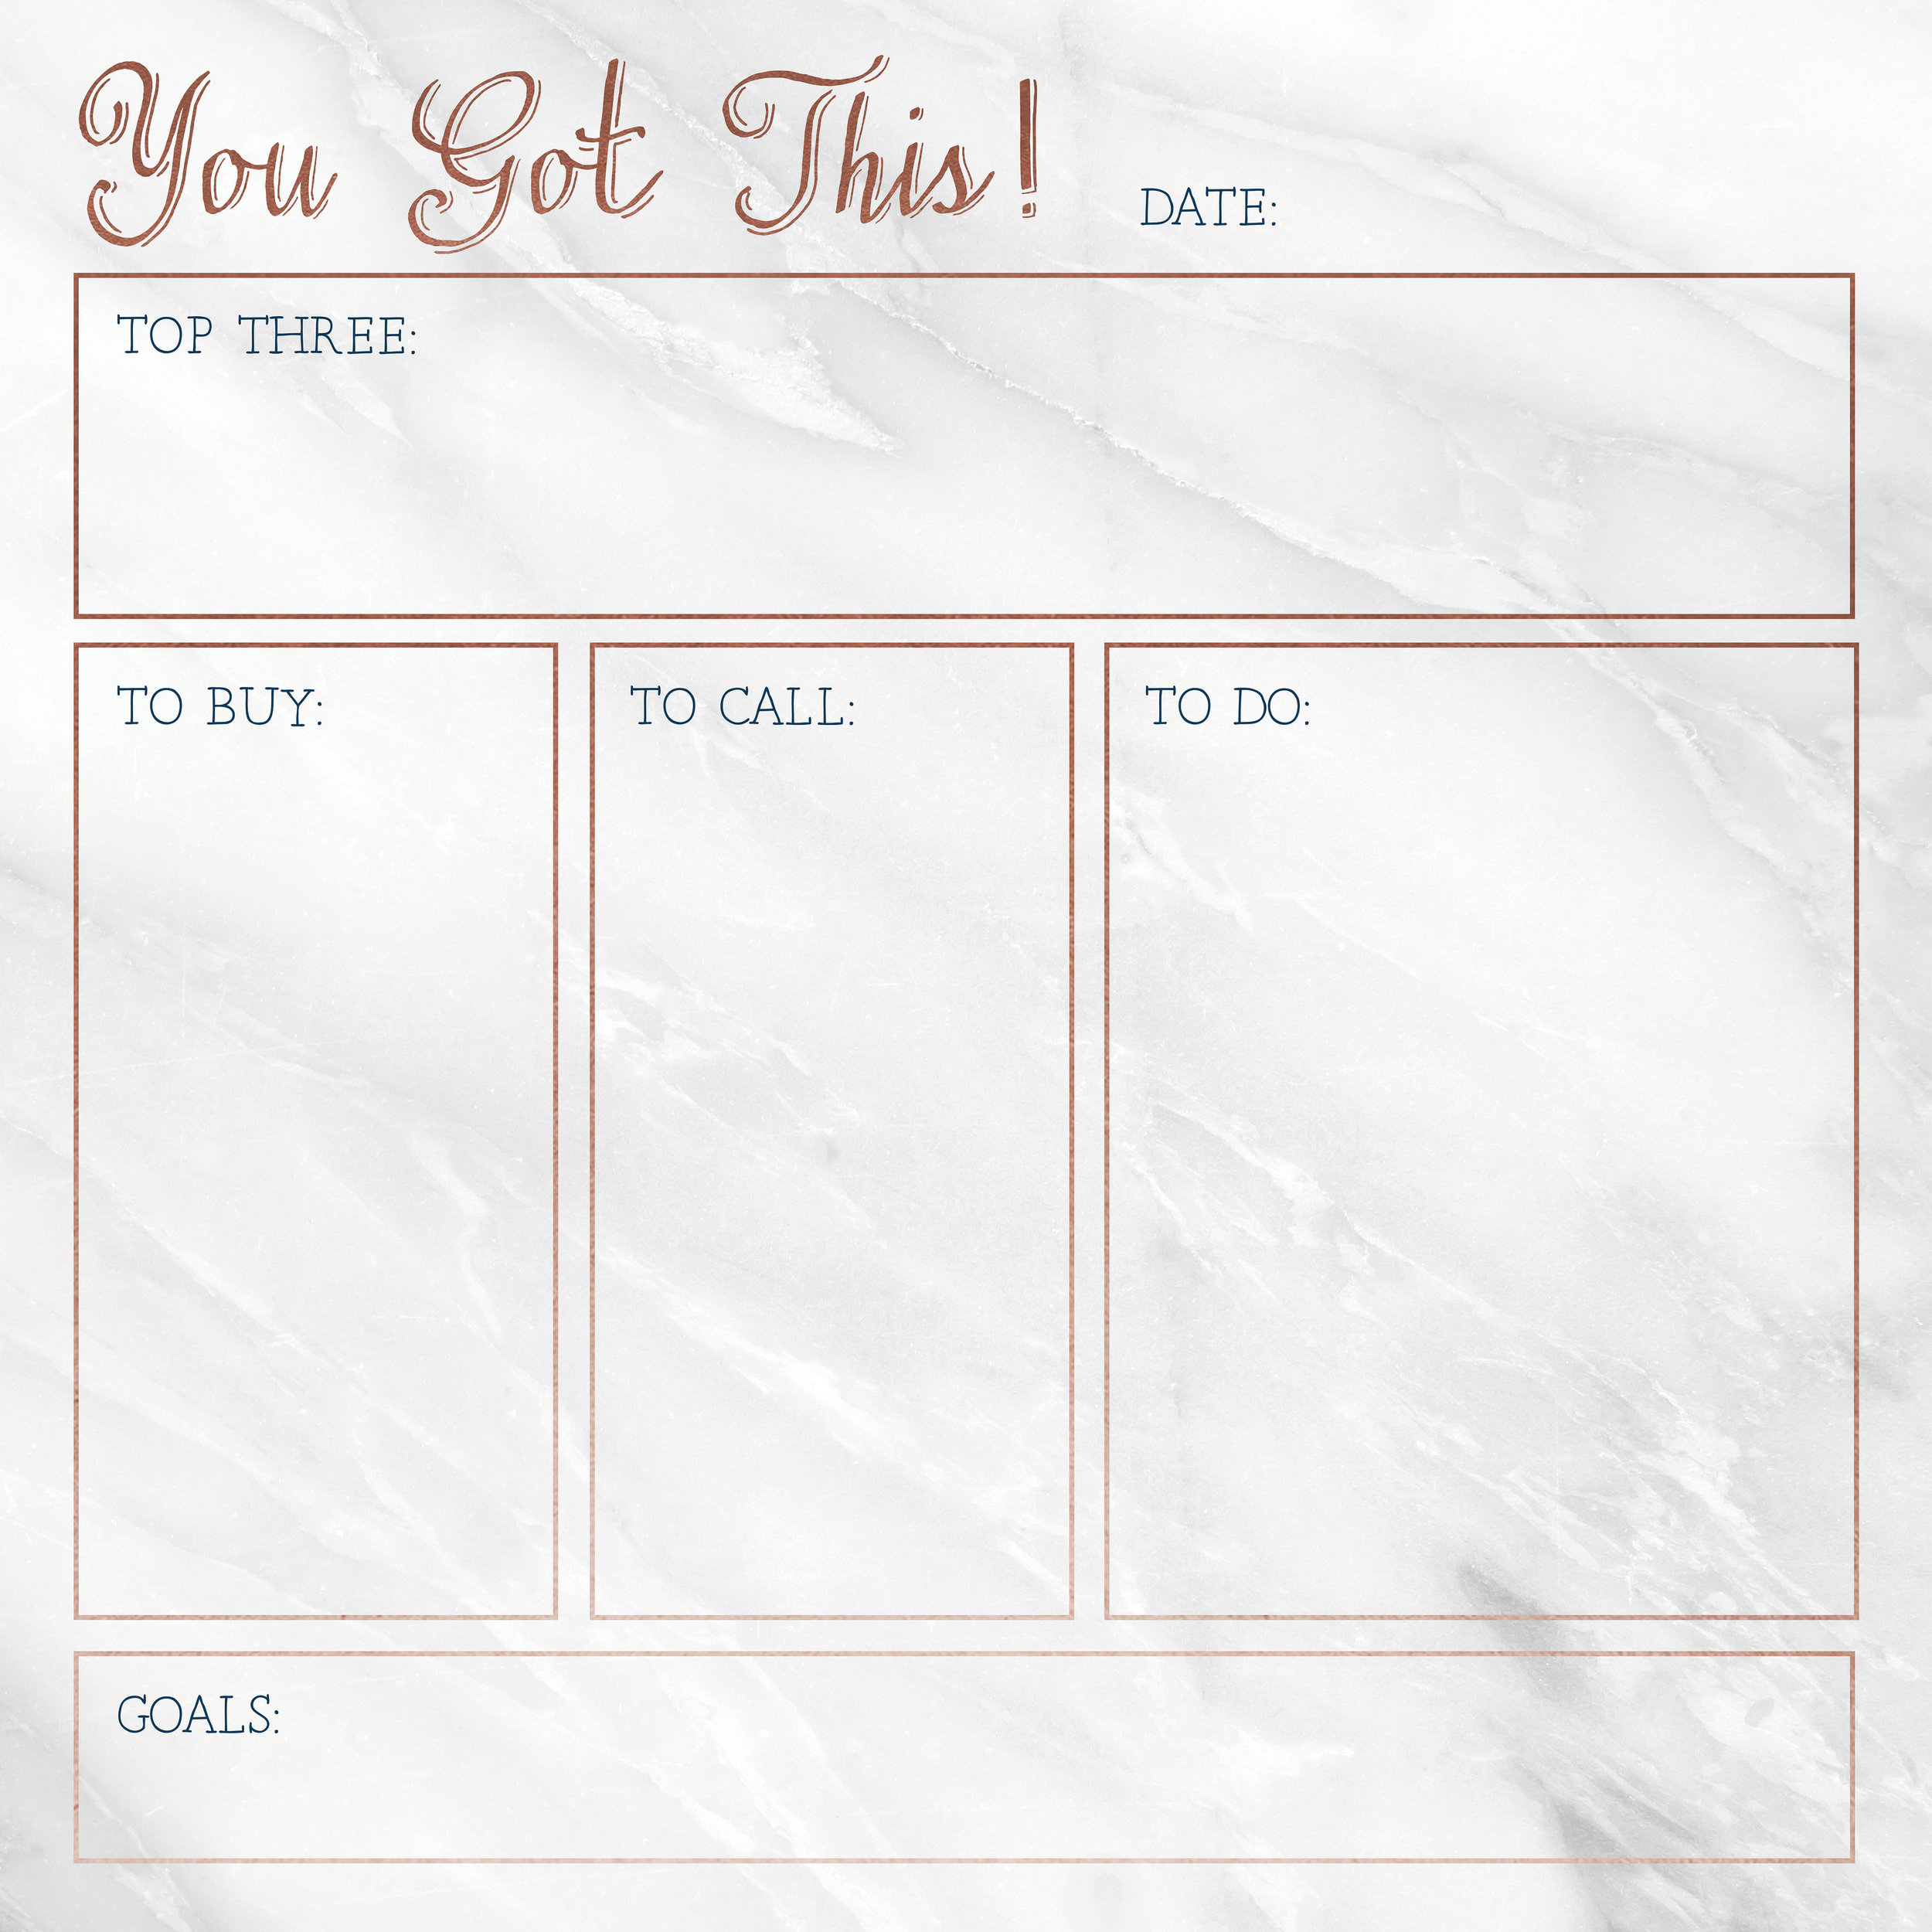 You Got This!   Workspace dry erase board with marble background and rose gold and dark blue accents.